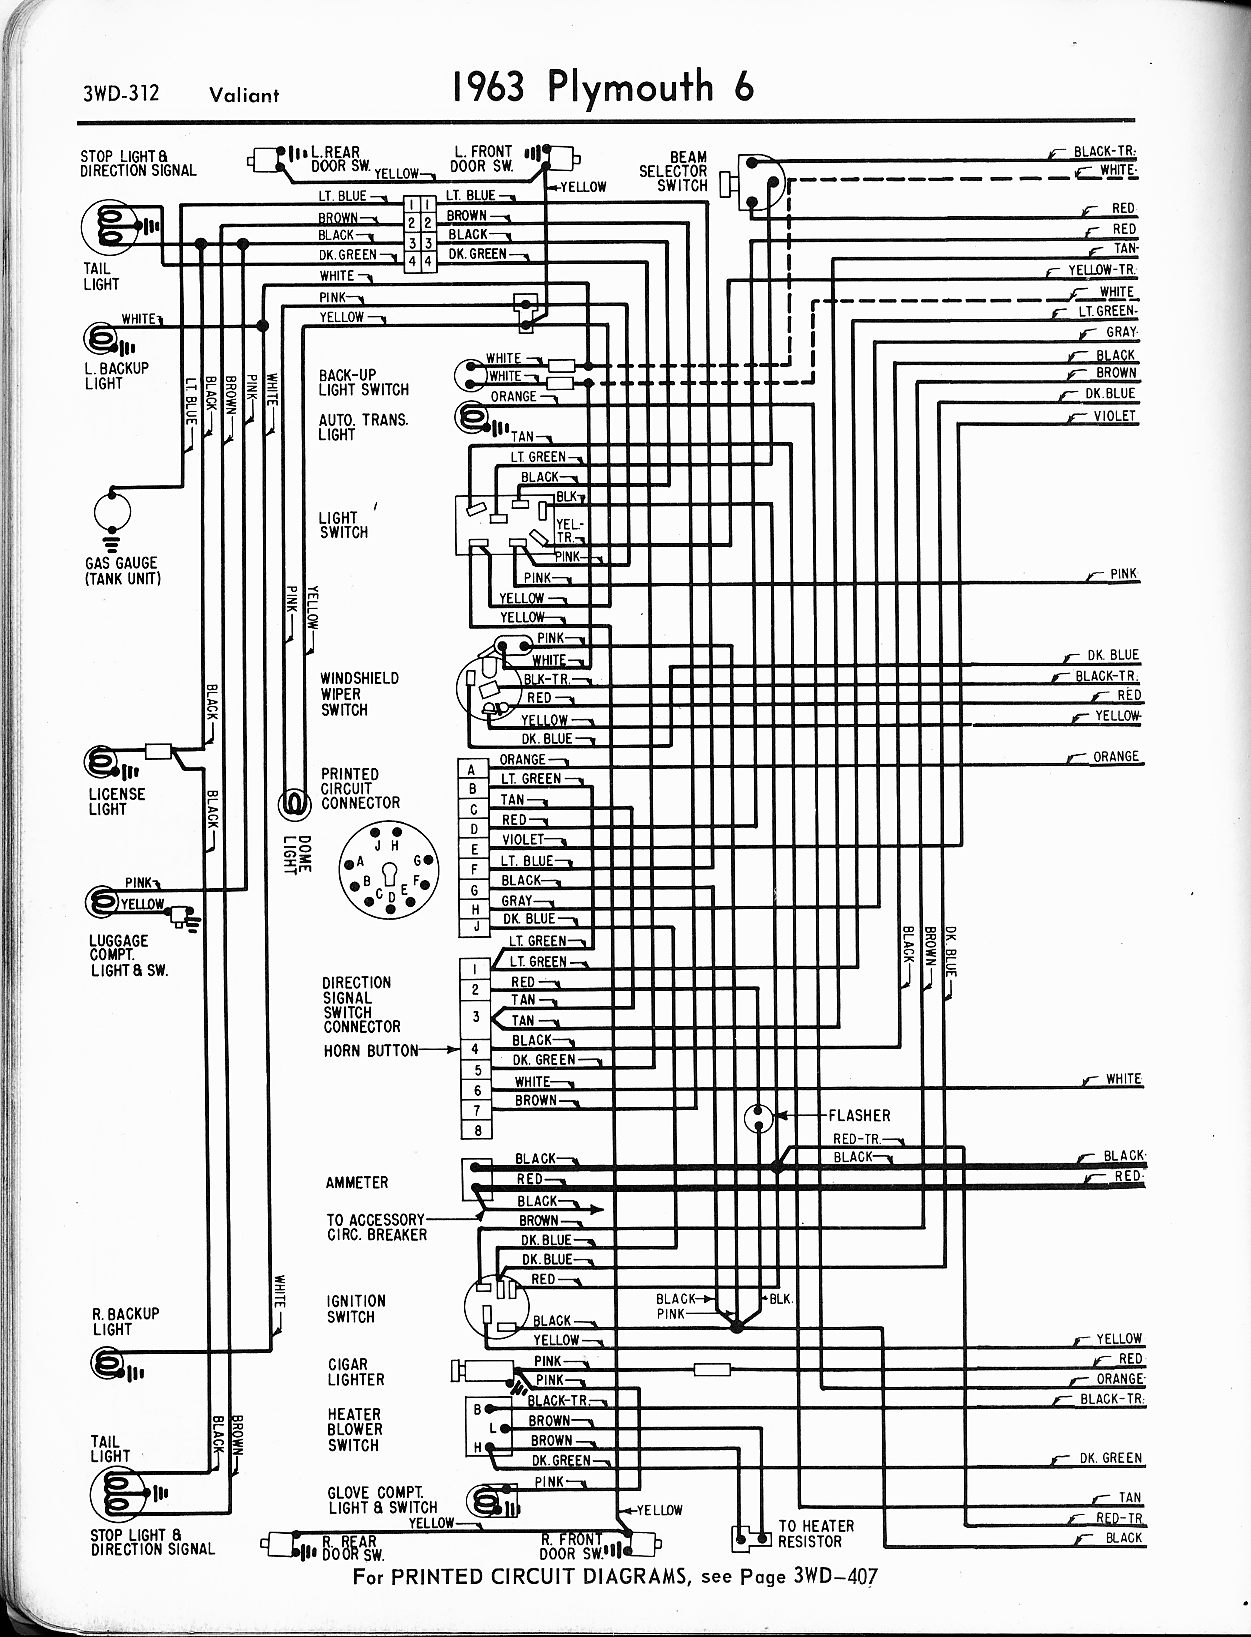 1956 1965 plymouth wiring the old car manual project rh oldcarmanualproject com 1939 Plymouth Positive Ground Wiring-Diagram Chevy 350 Starter Wiring Diagram